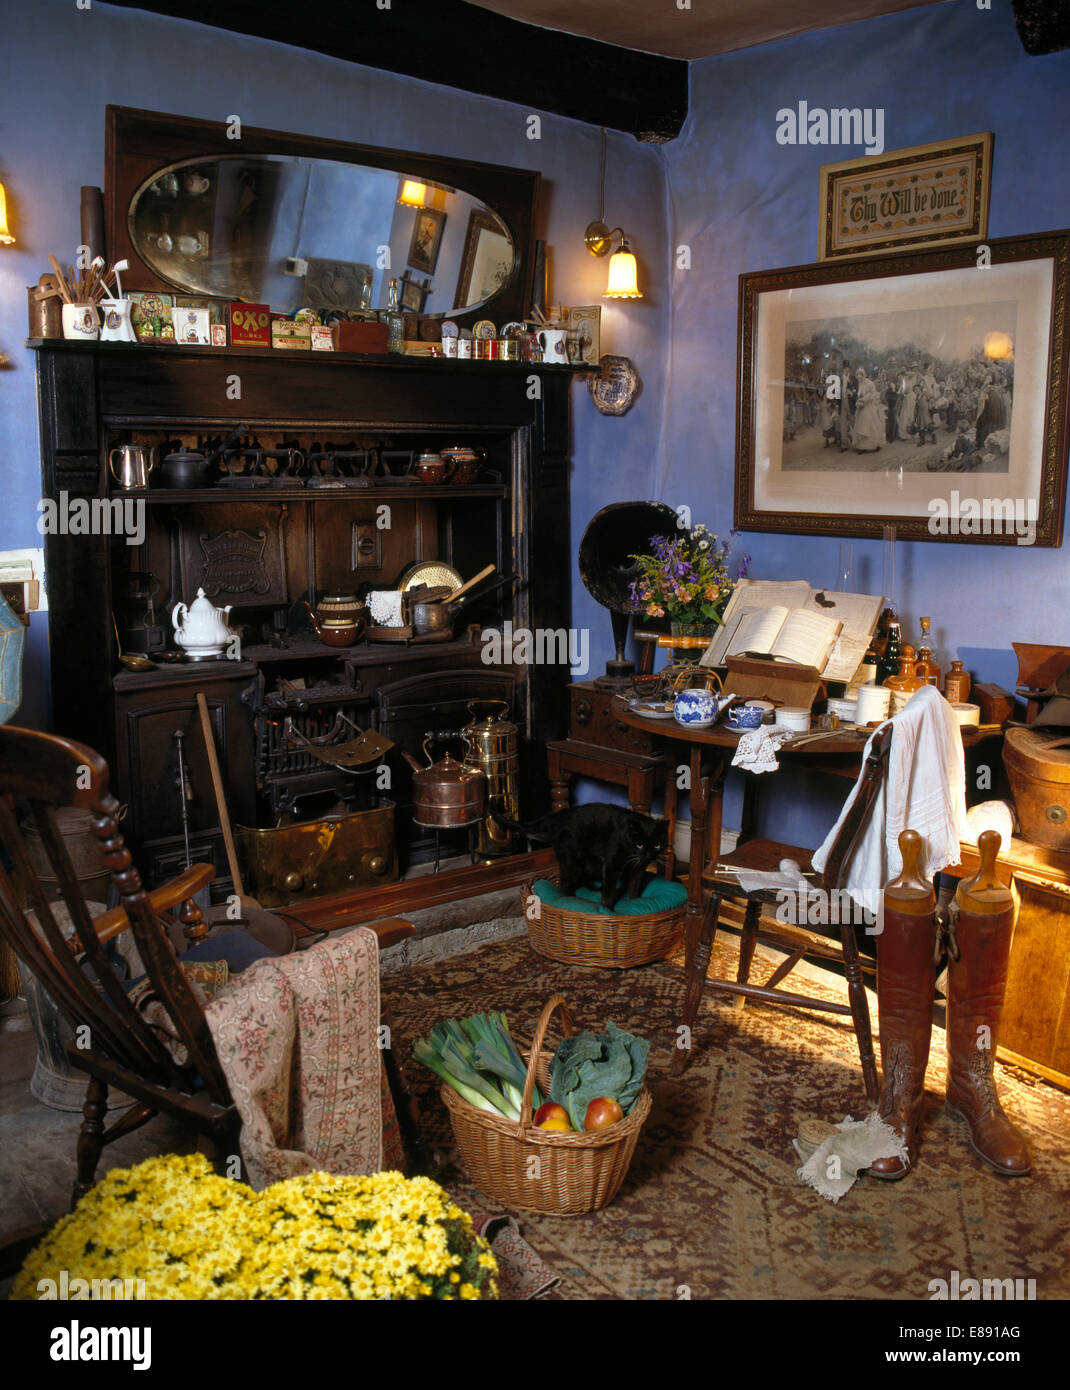 Old Victorian Range In Old Fashioned Blue Kitchen With Basket Of Vegetables  And Old Riding Boots